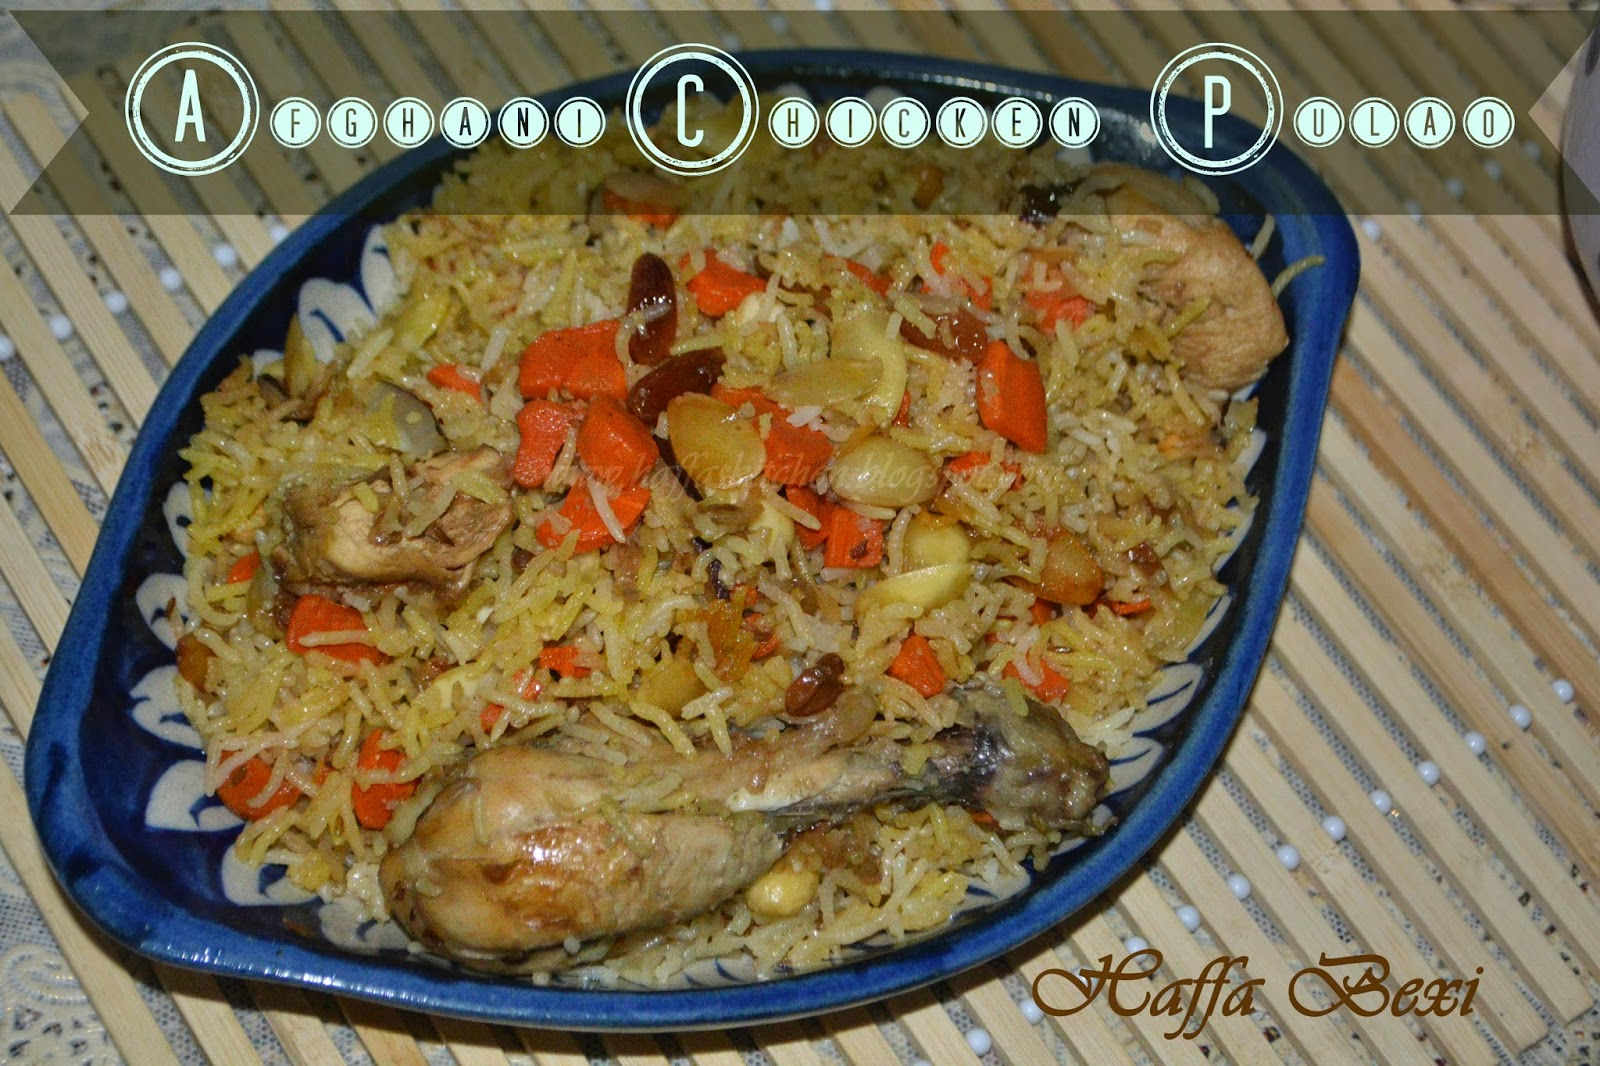 pakistani rice dishes| Rice| recipe for rice pilaf| International Cuisines| Afghan Cuisines| Afghani Pulao| kabuli pulao| kabuli pulao recipe| how to make kabuli pulao| basmati rice recipes| afghan food recipes| Qabuli Pulao| Afghani Chicken Pulao